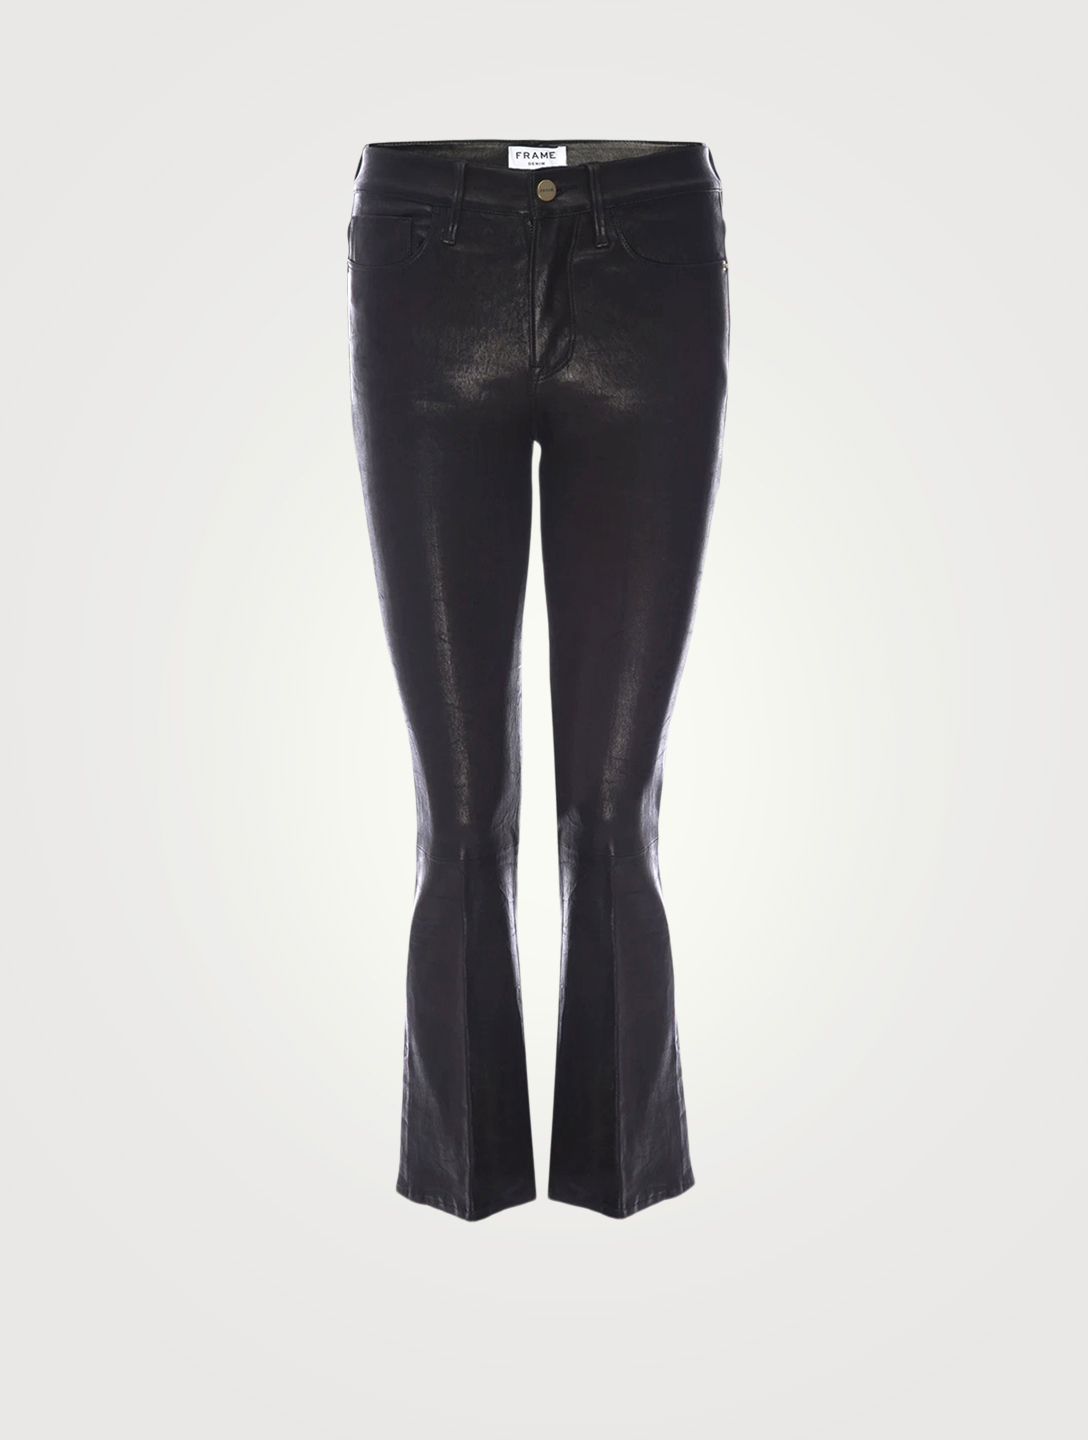 FRAME Le Crop Mini Leather Pants Women's Black